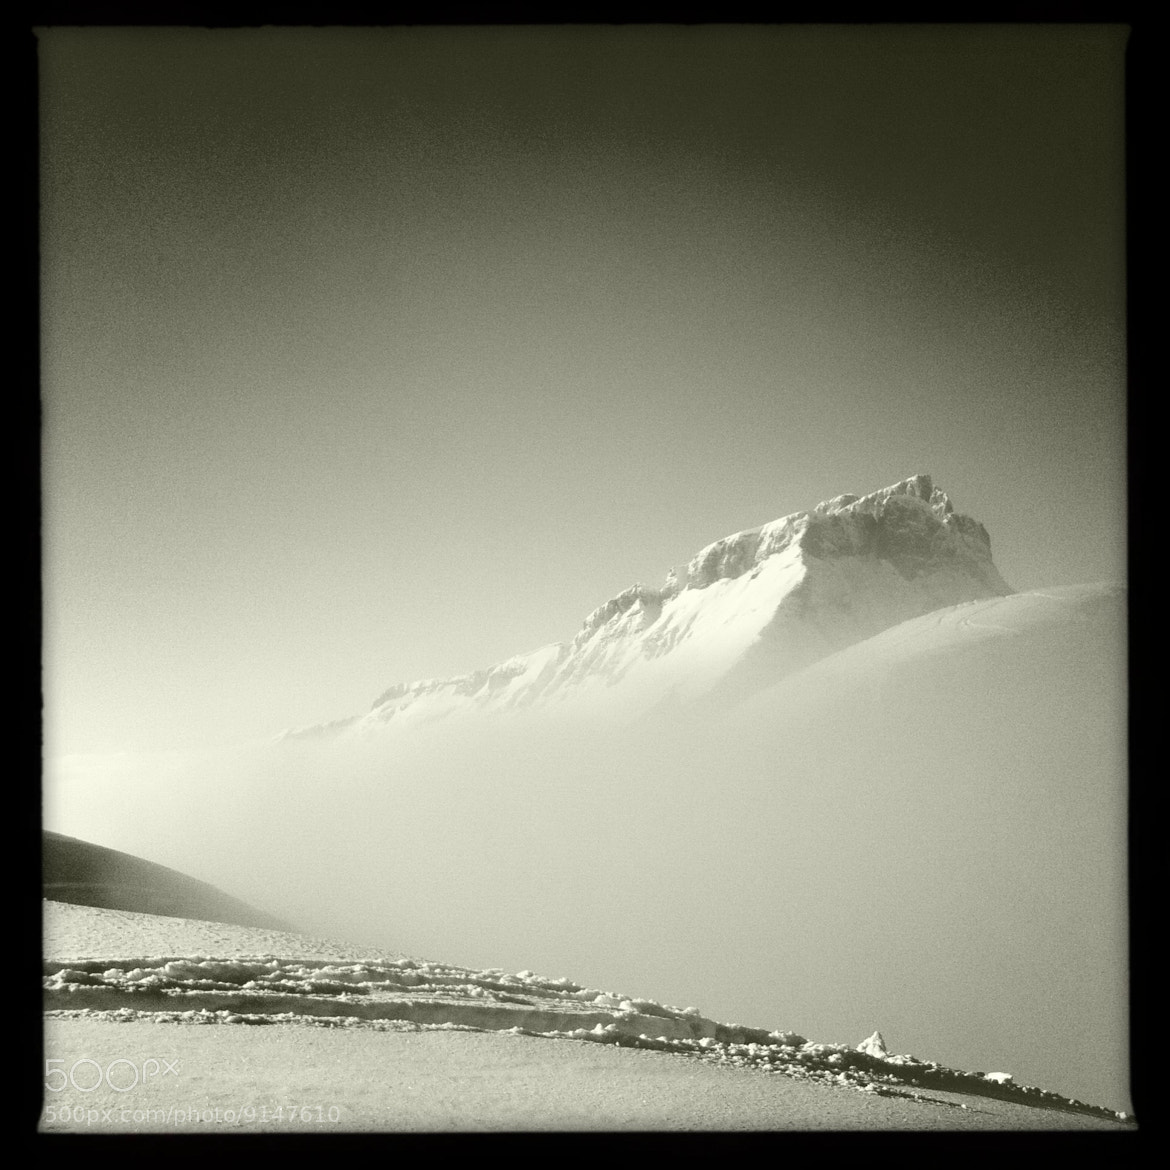 Photograph HipstaMountain by Matthias Wirth on 500px